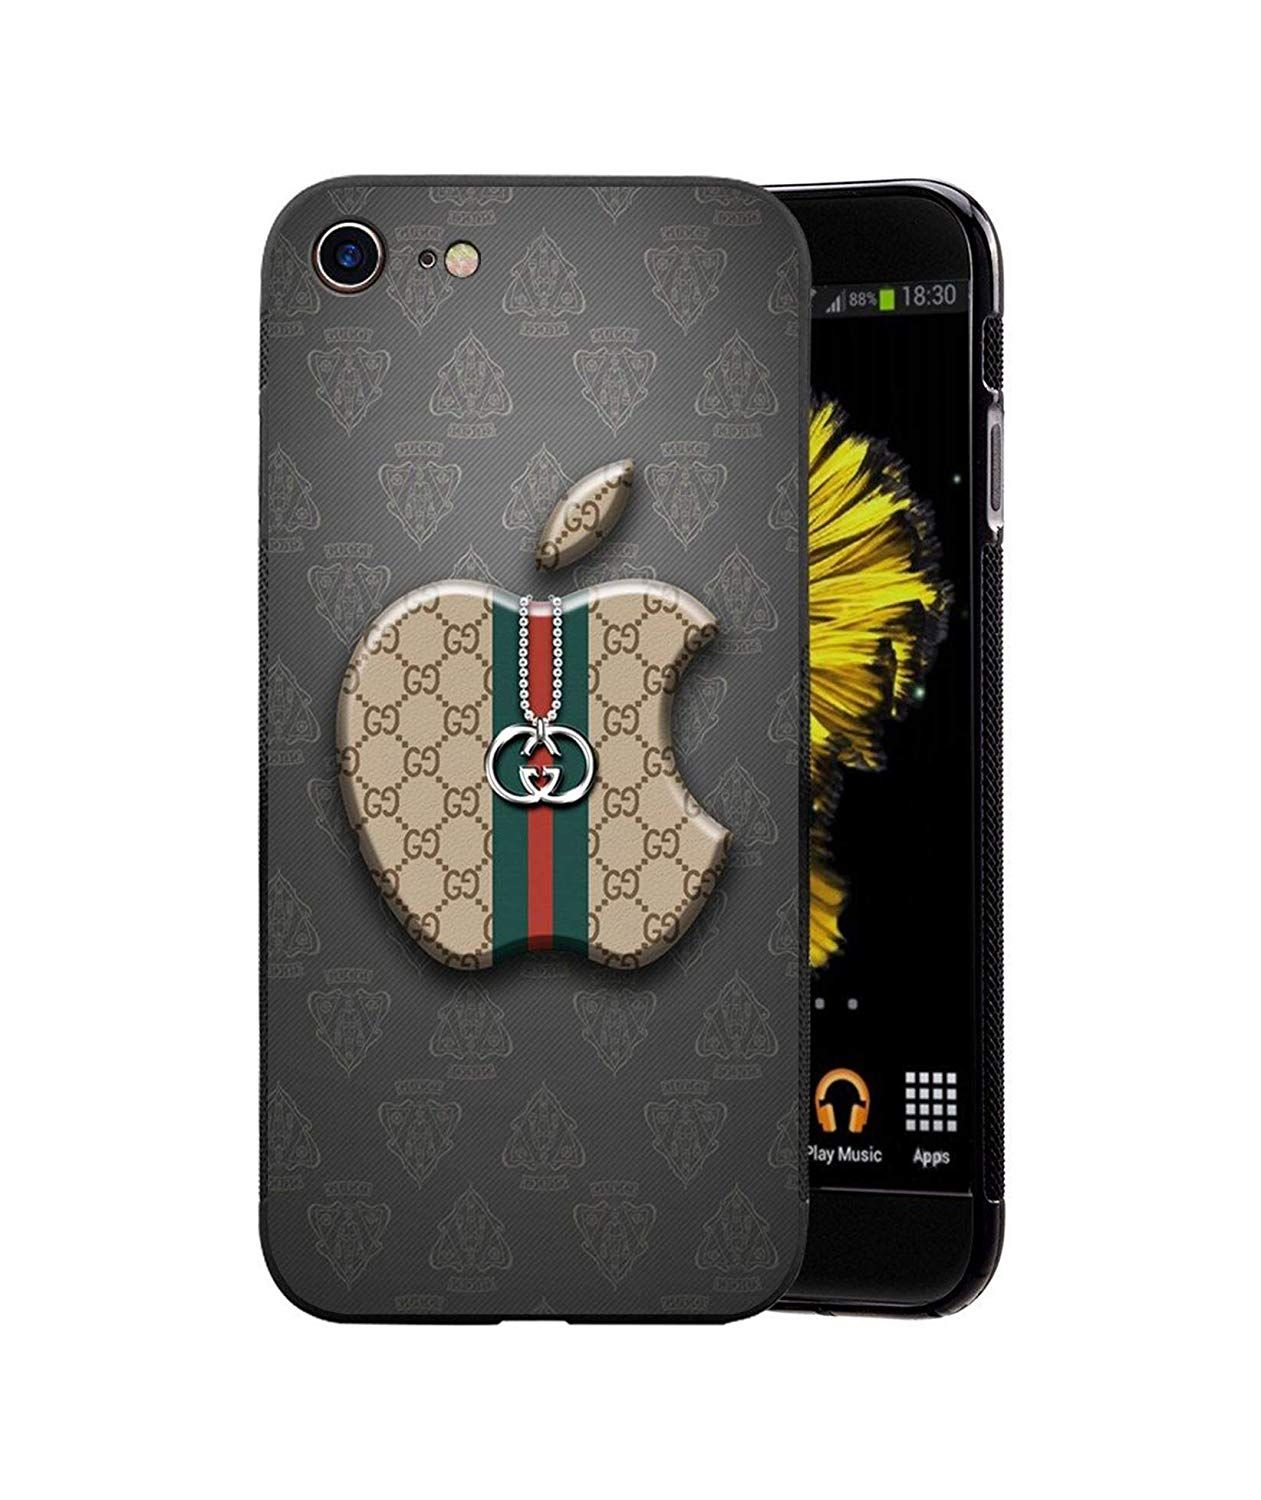 Coque iPhone 6/6S Plus, Hot Fashion Logo AppleGucci iPhone